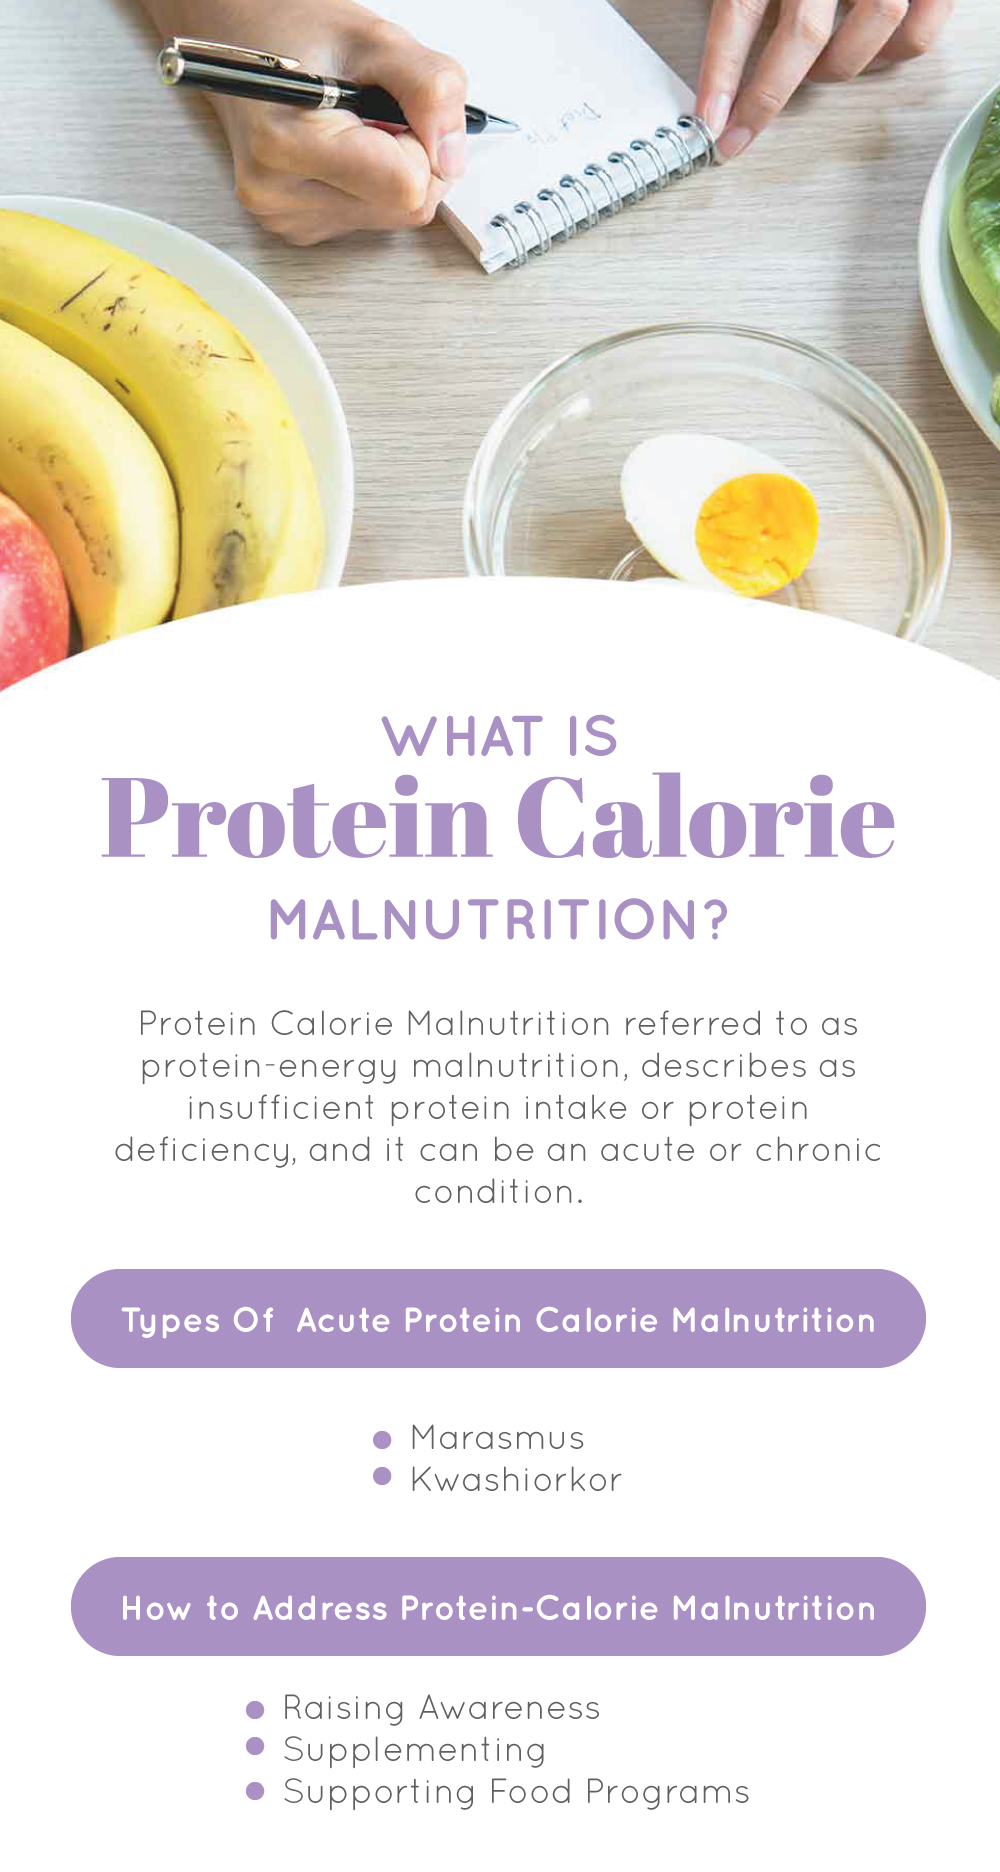 What Is Protein Calorie Malnutrition?